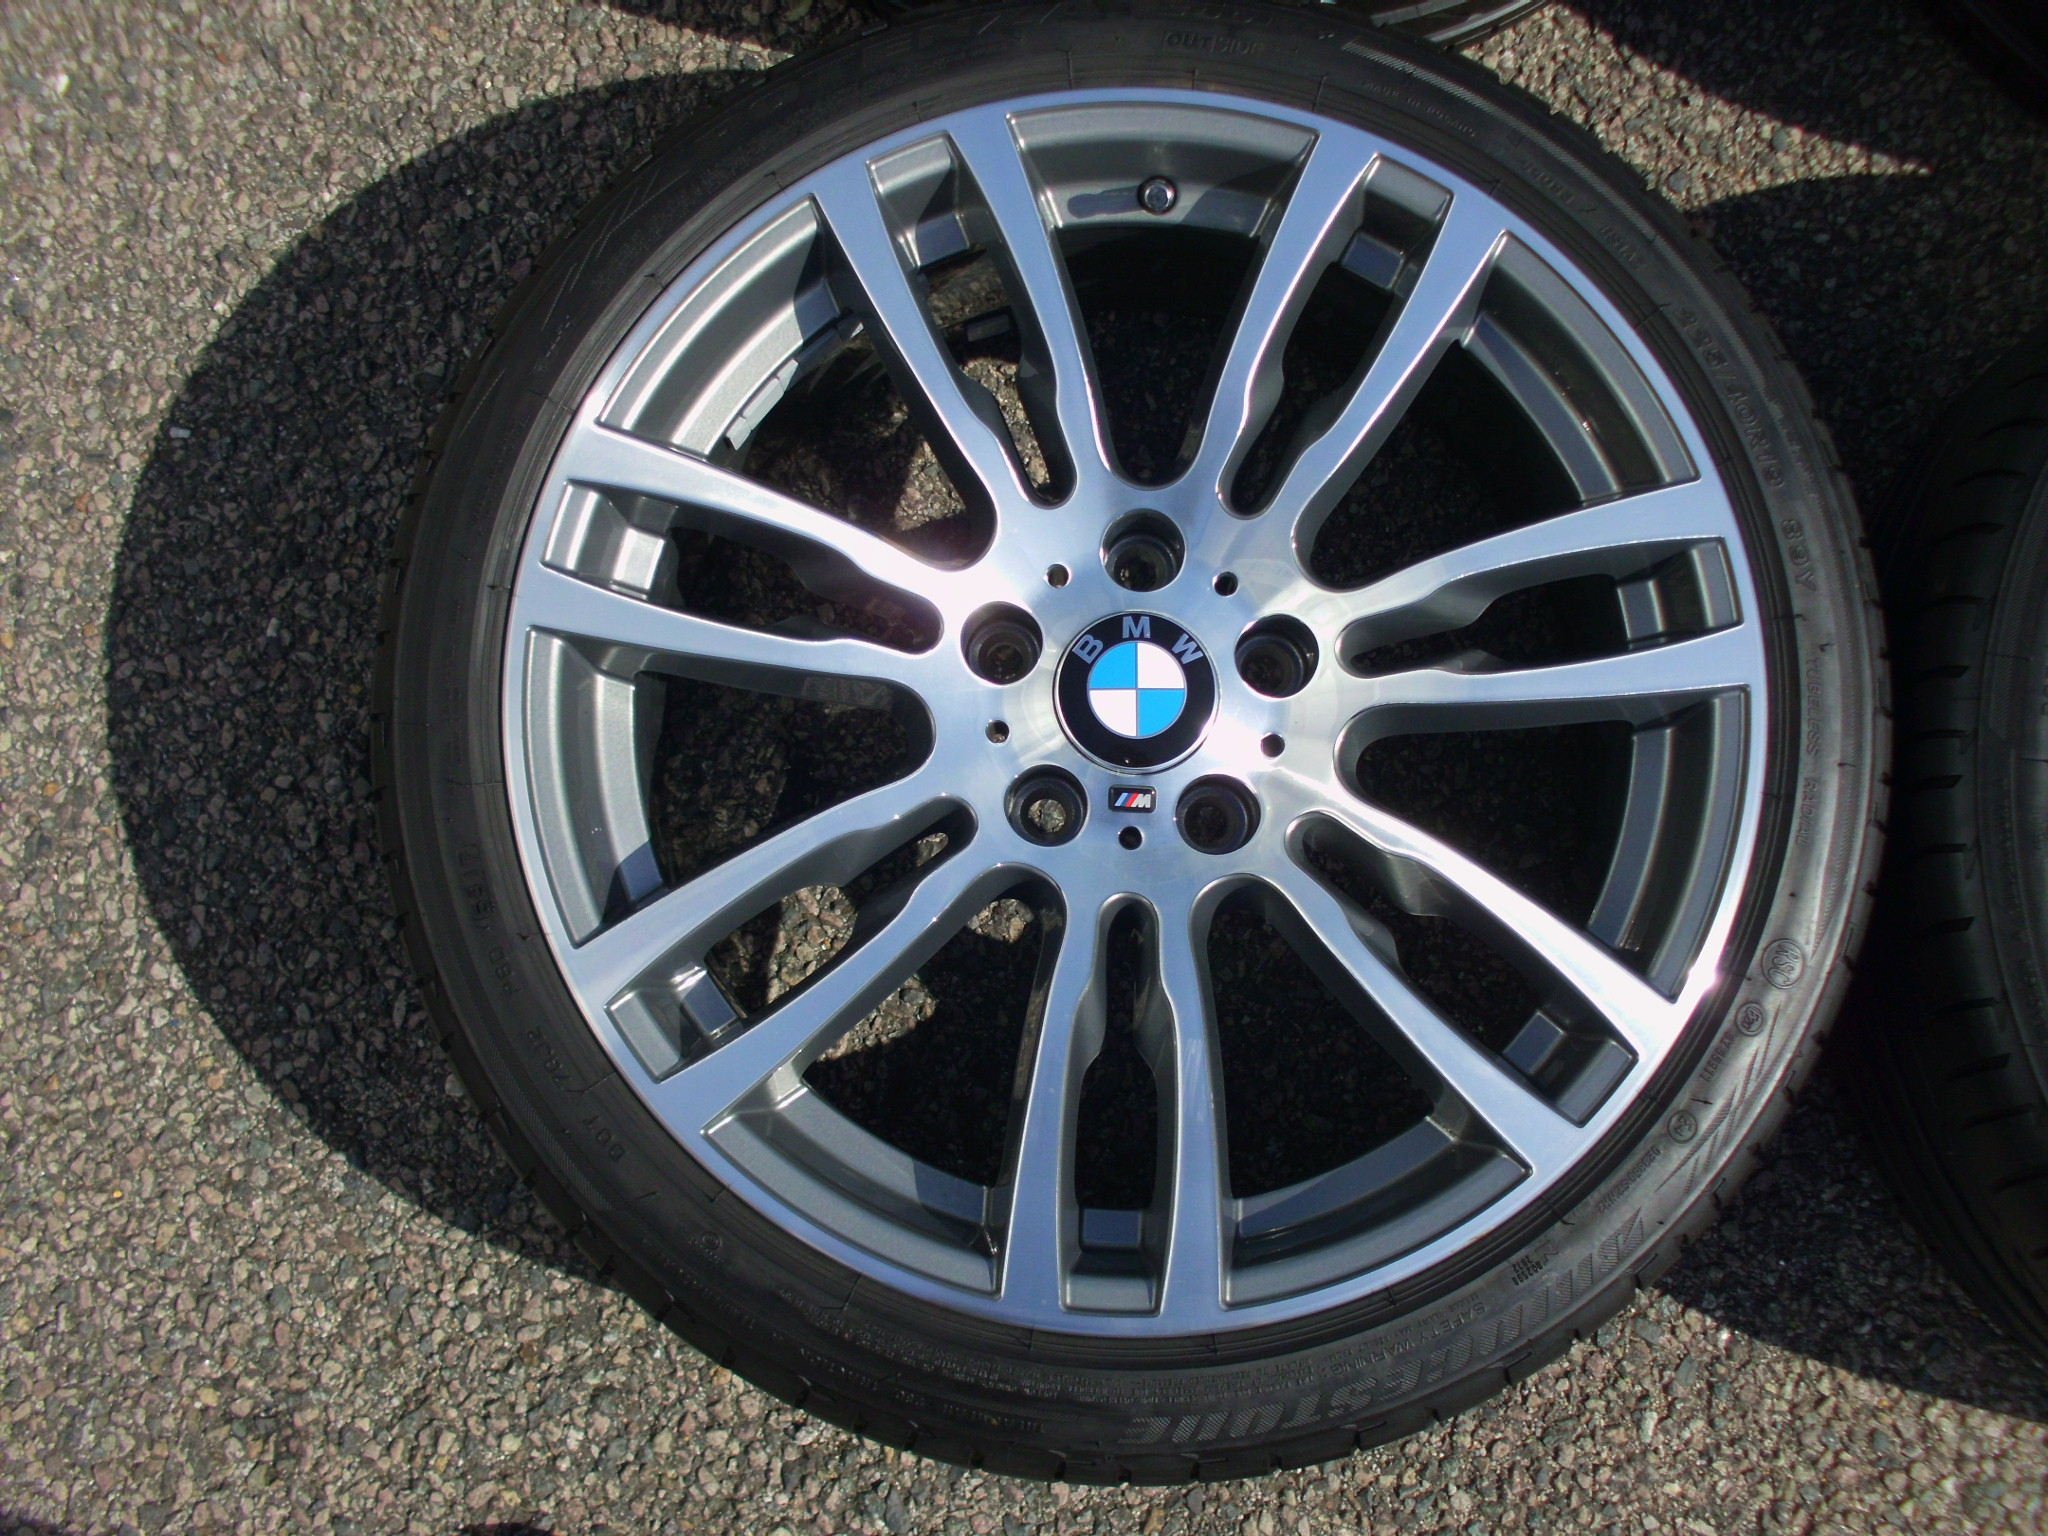 "USED 19"" GENUINE BMW STYLE 403 F30/31 M DOUBLE SPOKE ALLOYS WHEELS, FULLY REFURBED INC VG BRIDGESTONE RUNFLATS"